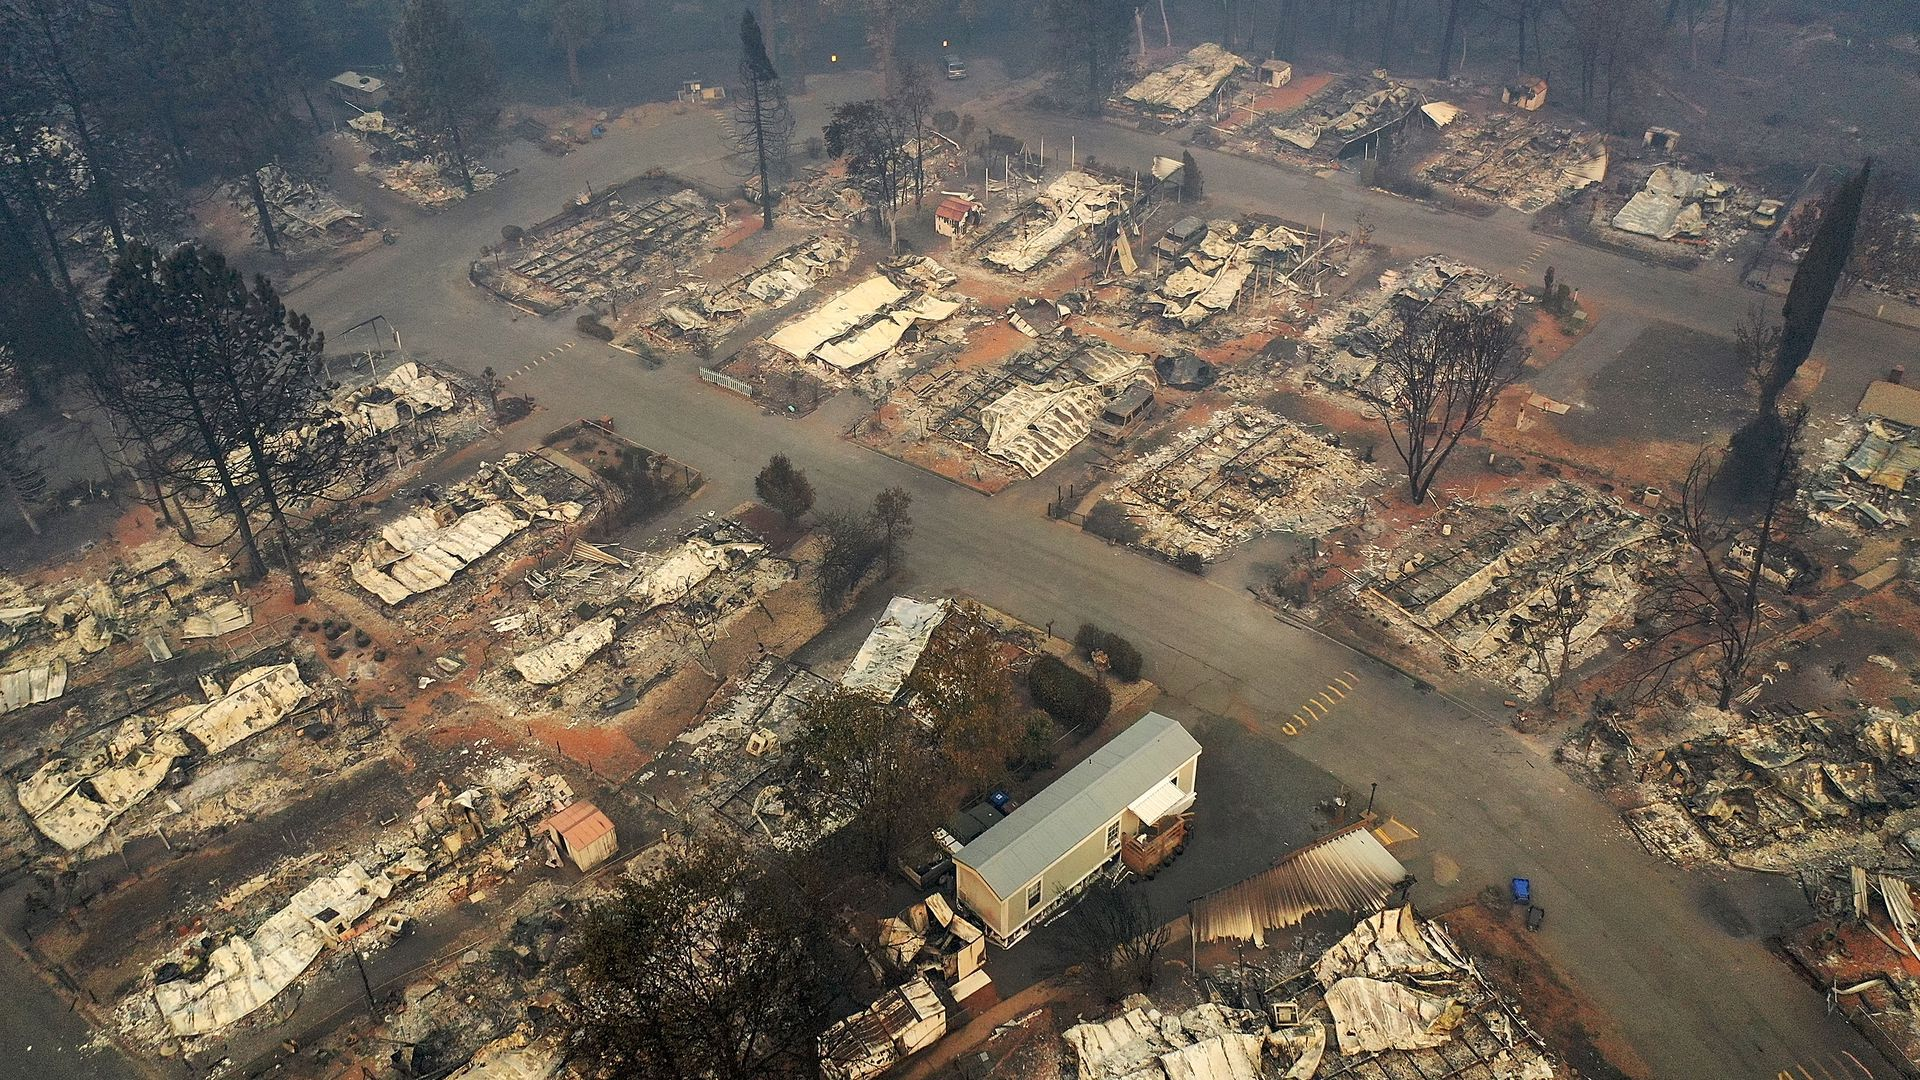 A view of a destroyed neighborhood in California